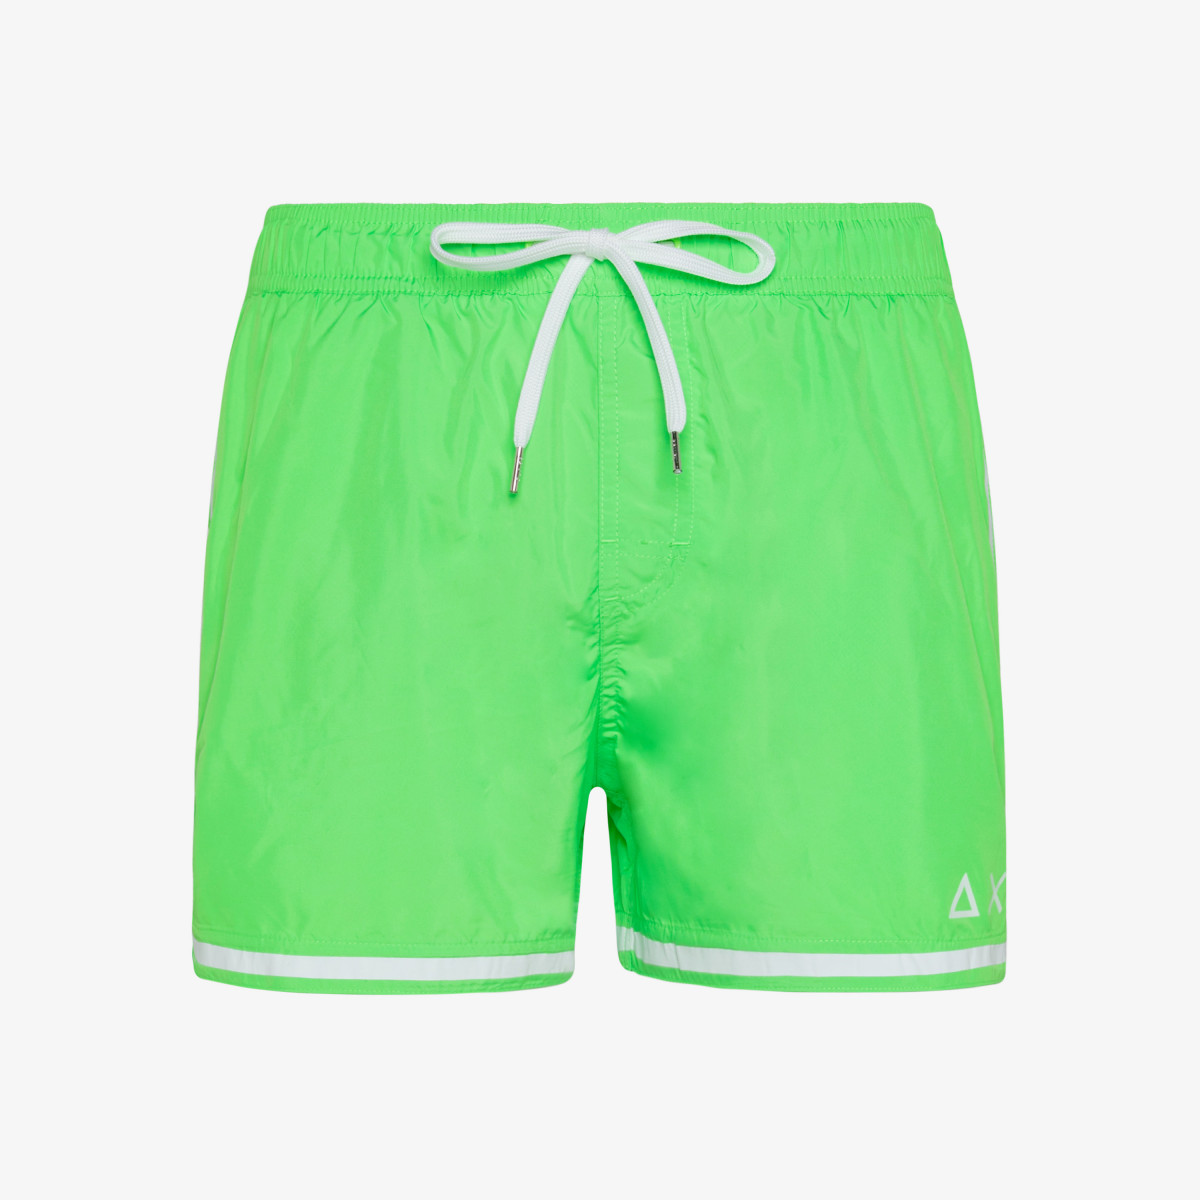 SWIM PANT SIDE BAND WHITE GREEN FLUO